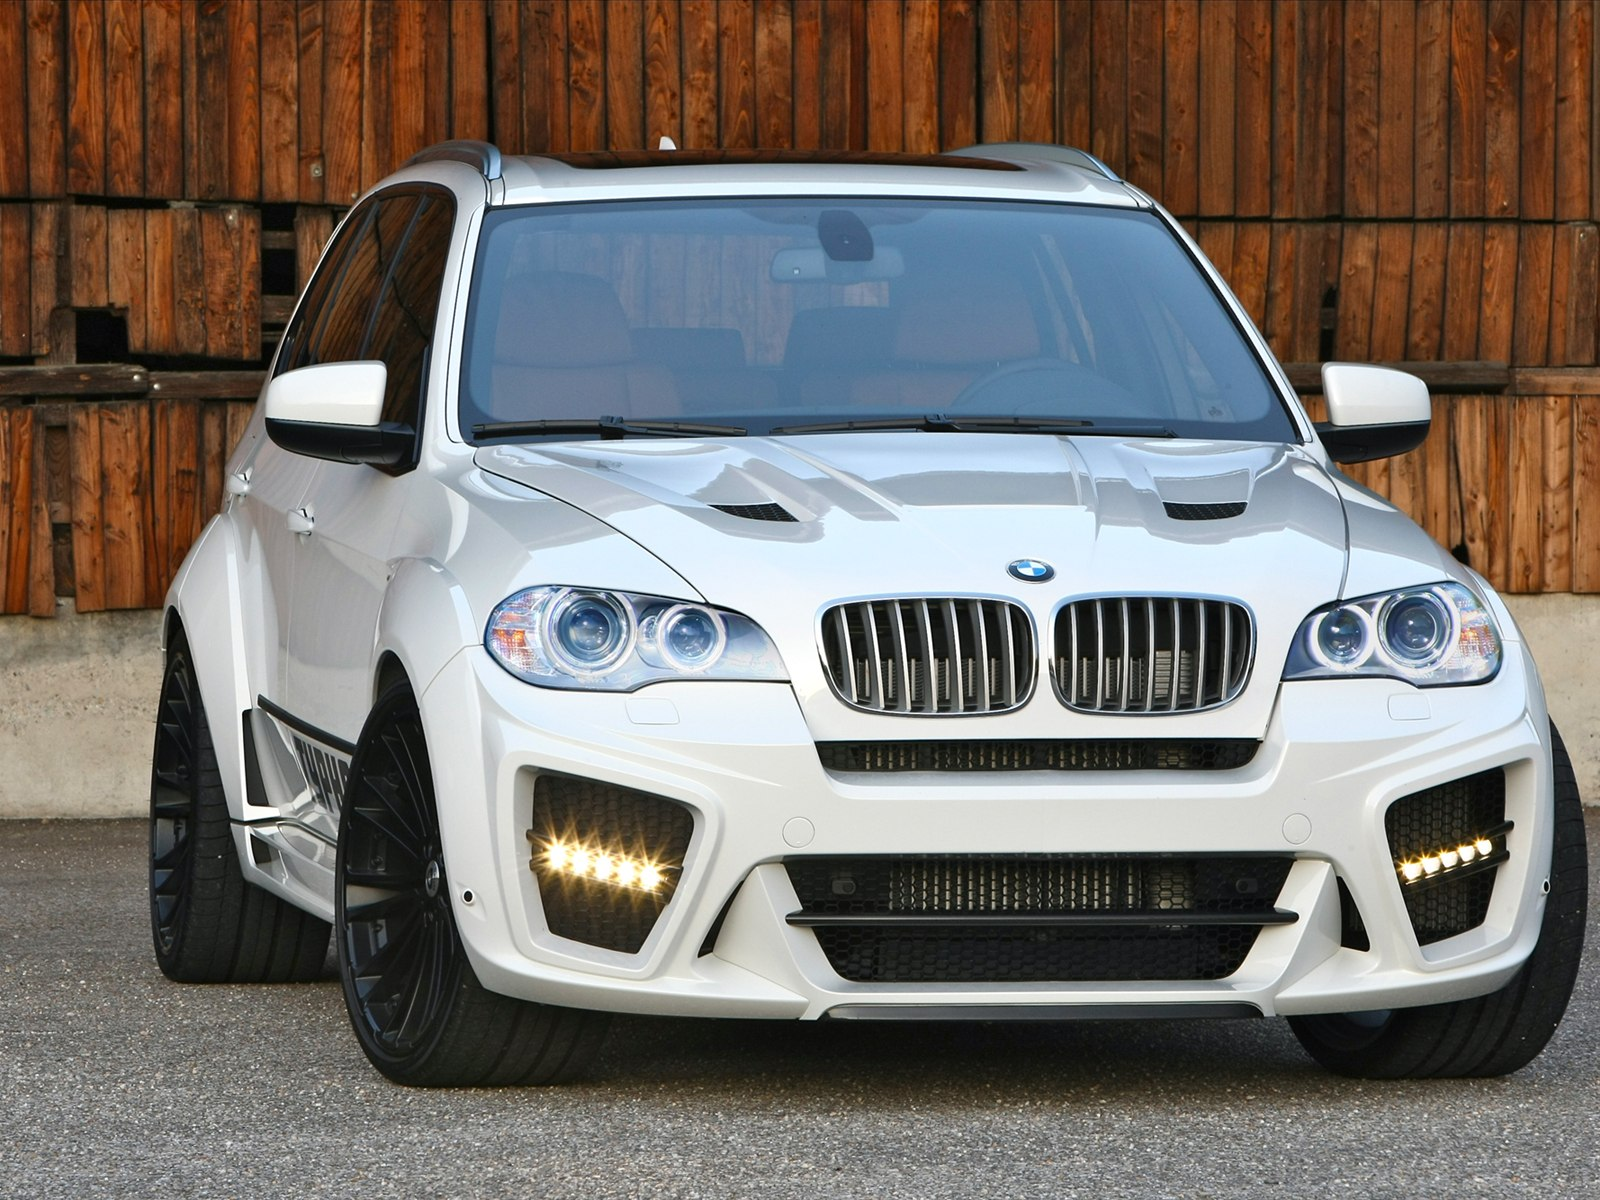 2011 G-power - Bmw X5 Typhoon